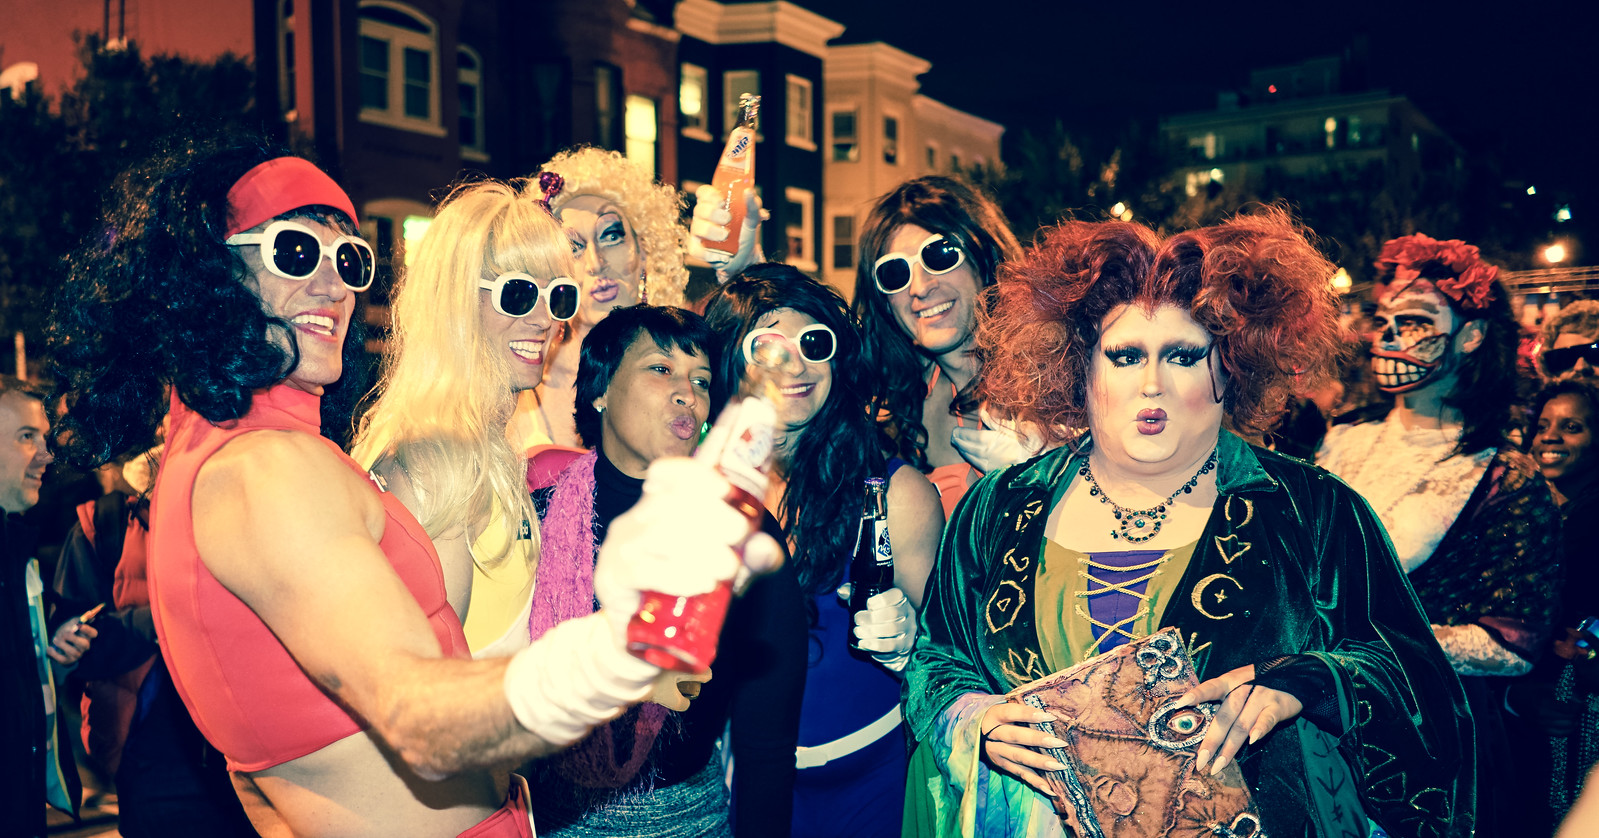 Thanks for Publishing my Photograph, in After 32 Years, The D.C. Government Is Taking Over The High Heel Race: DCist